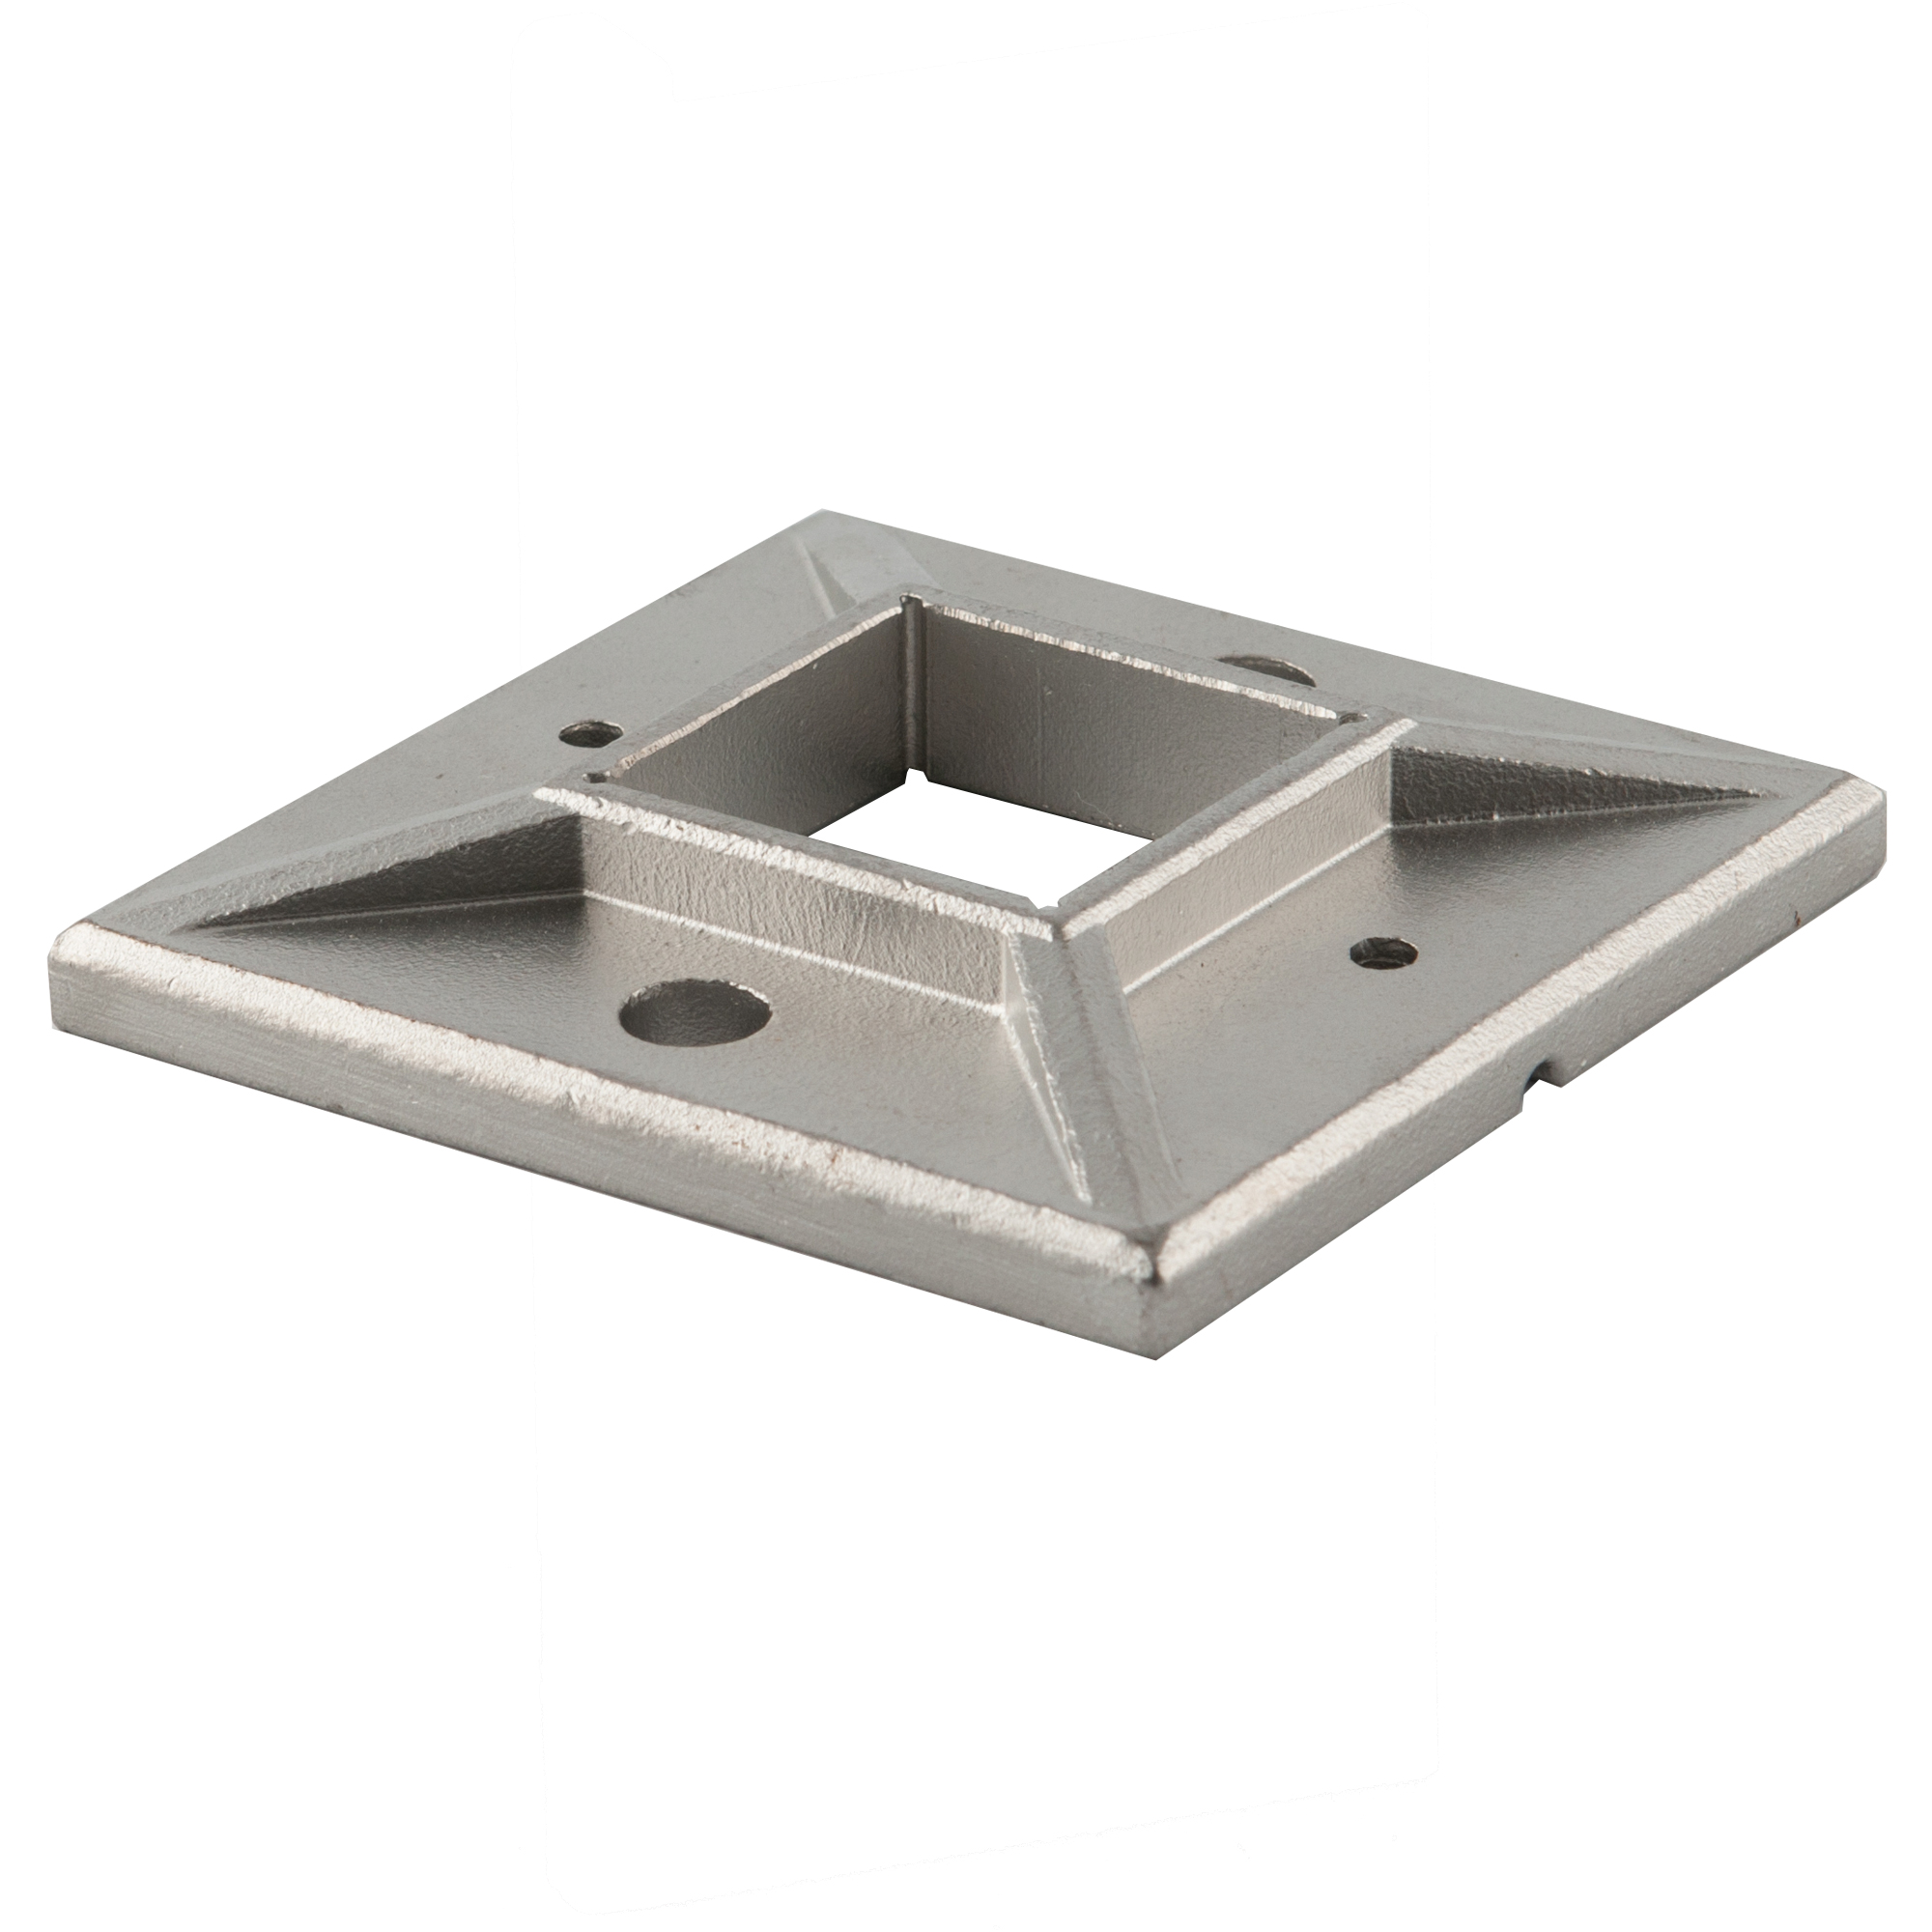 Flanges sb square system products for 1 inch square floor flange